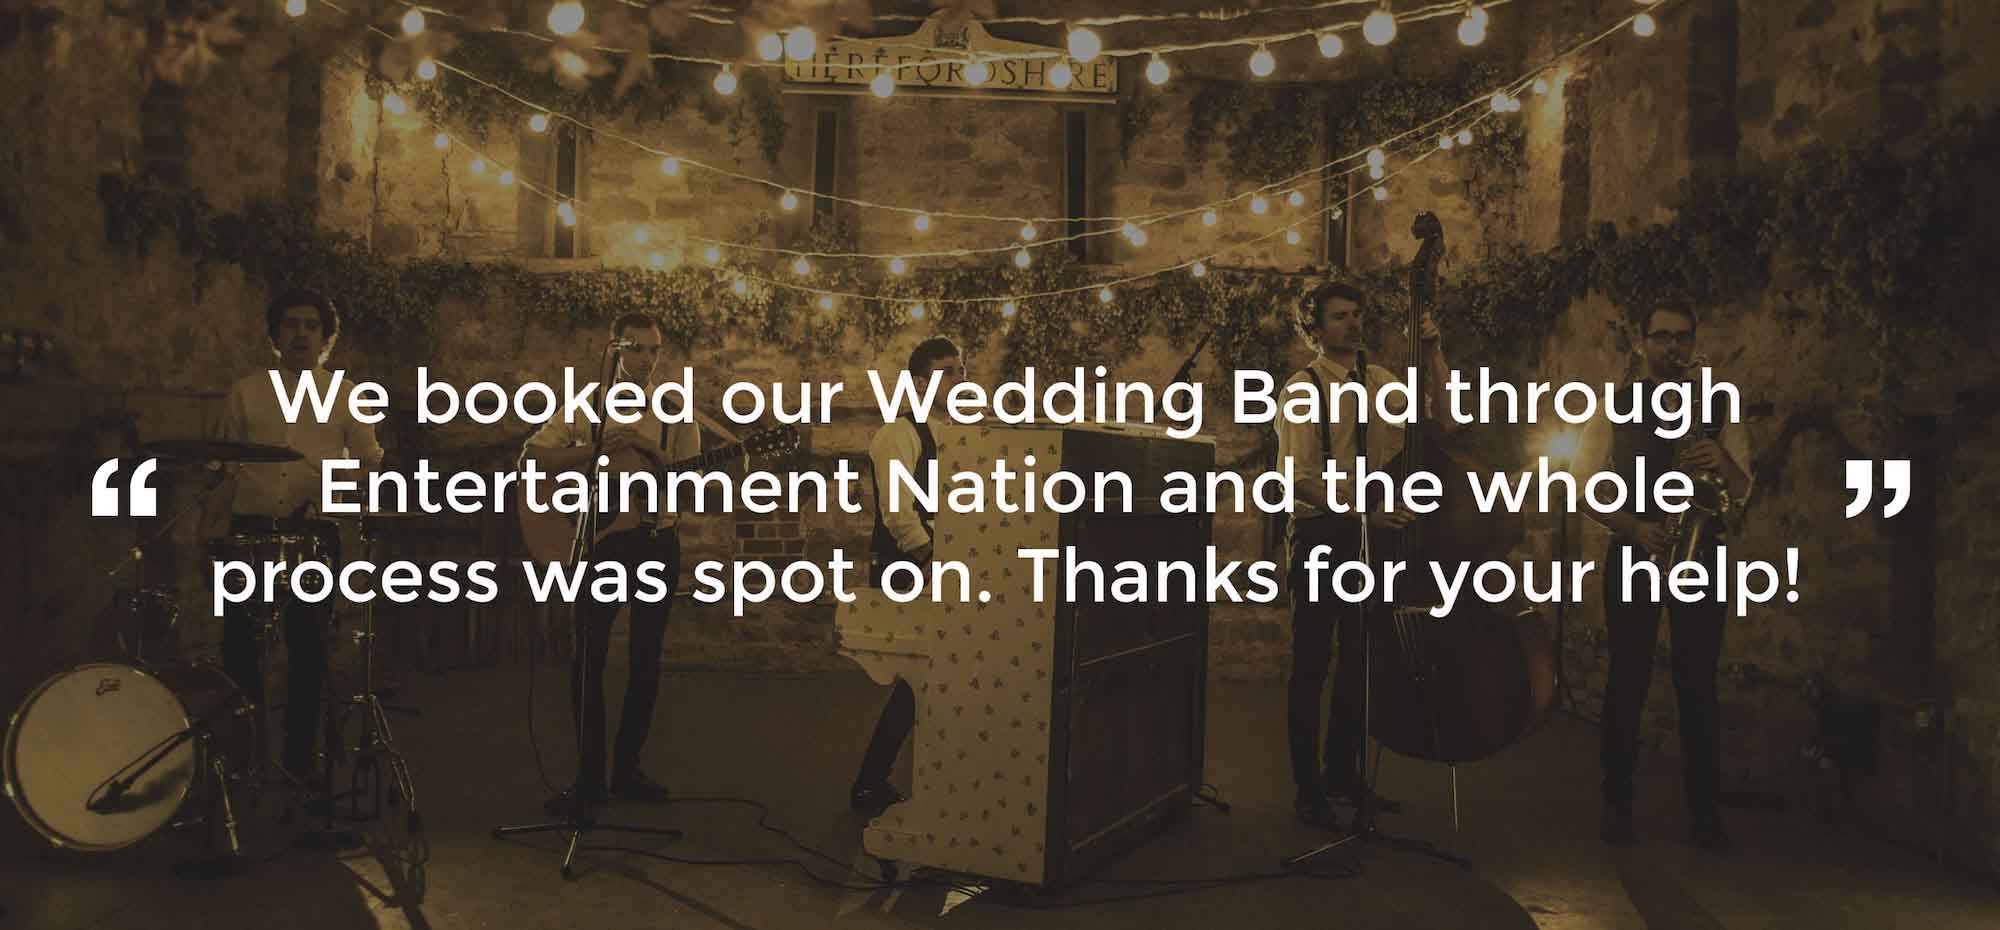 Review of Wedding Band Cotswolds